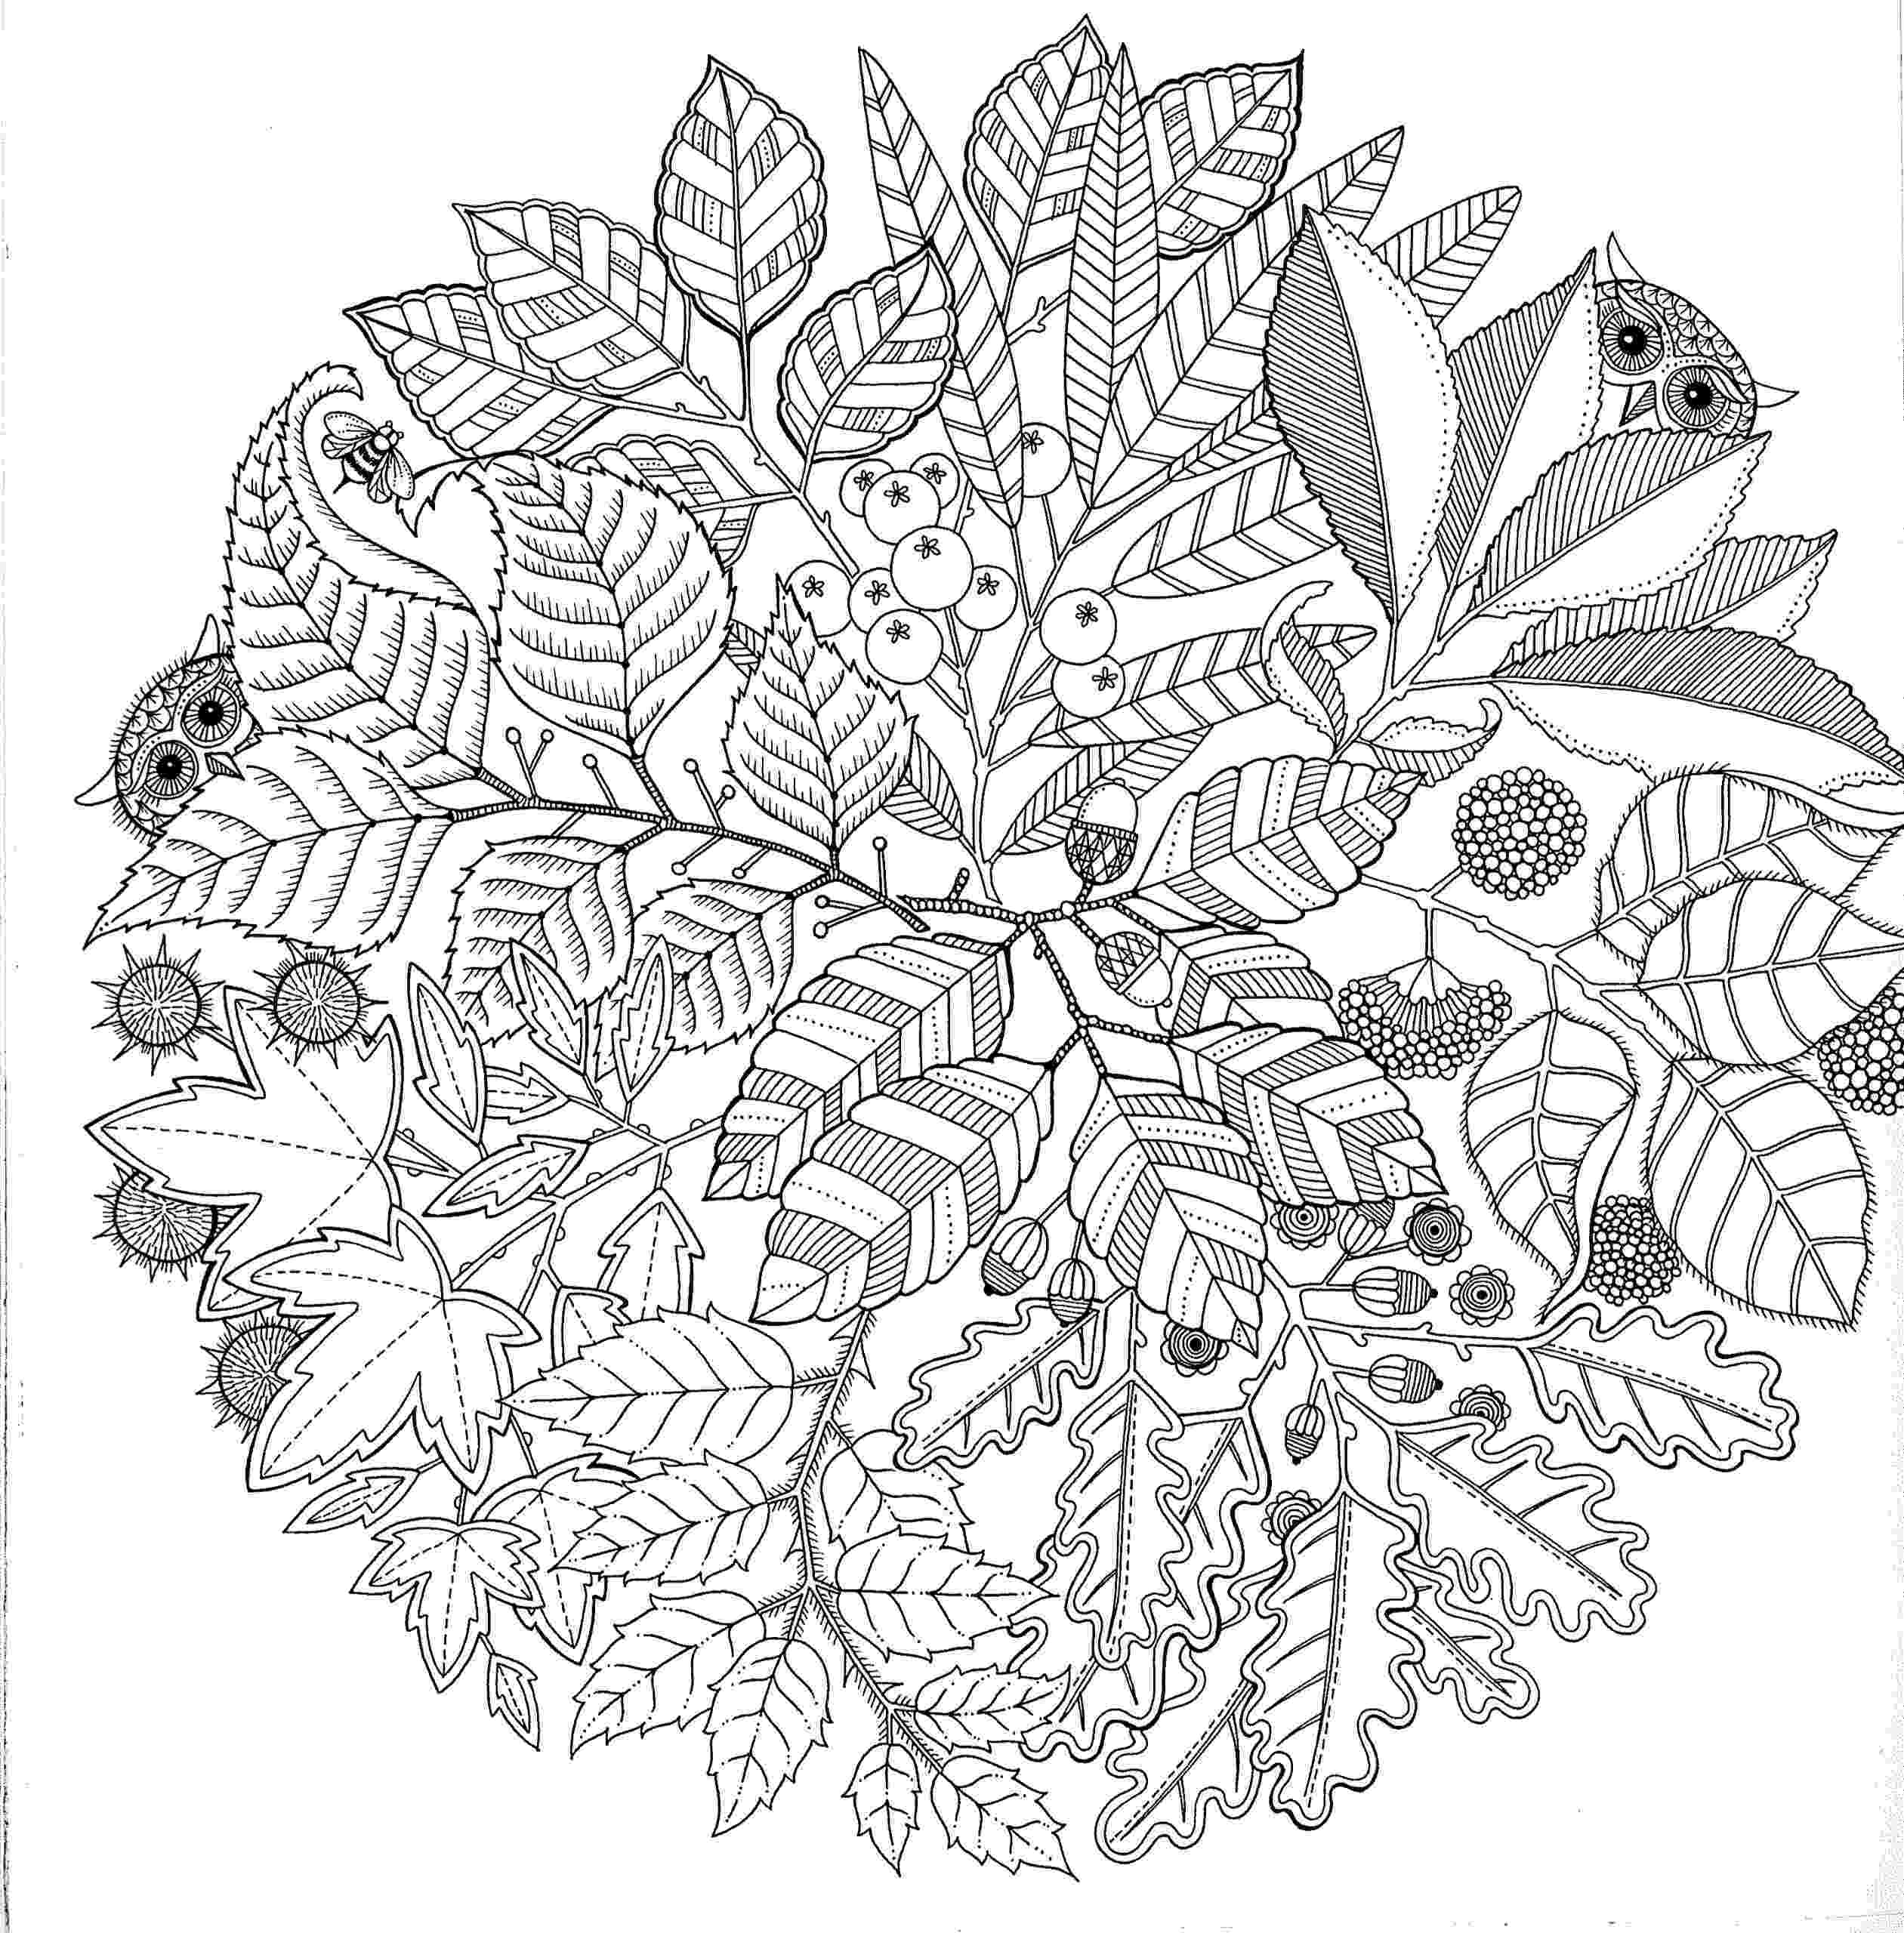 adult coloring pages abstract free printable abstract coloring pages for adults pages coloring adult abstract 1 1